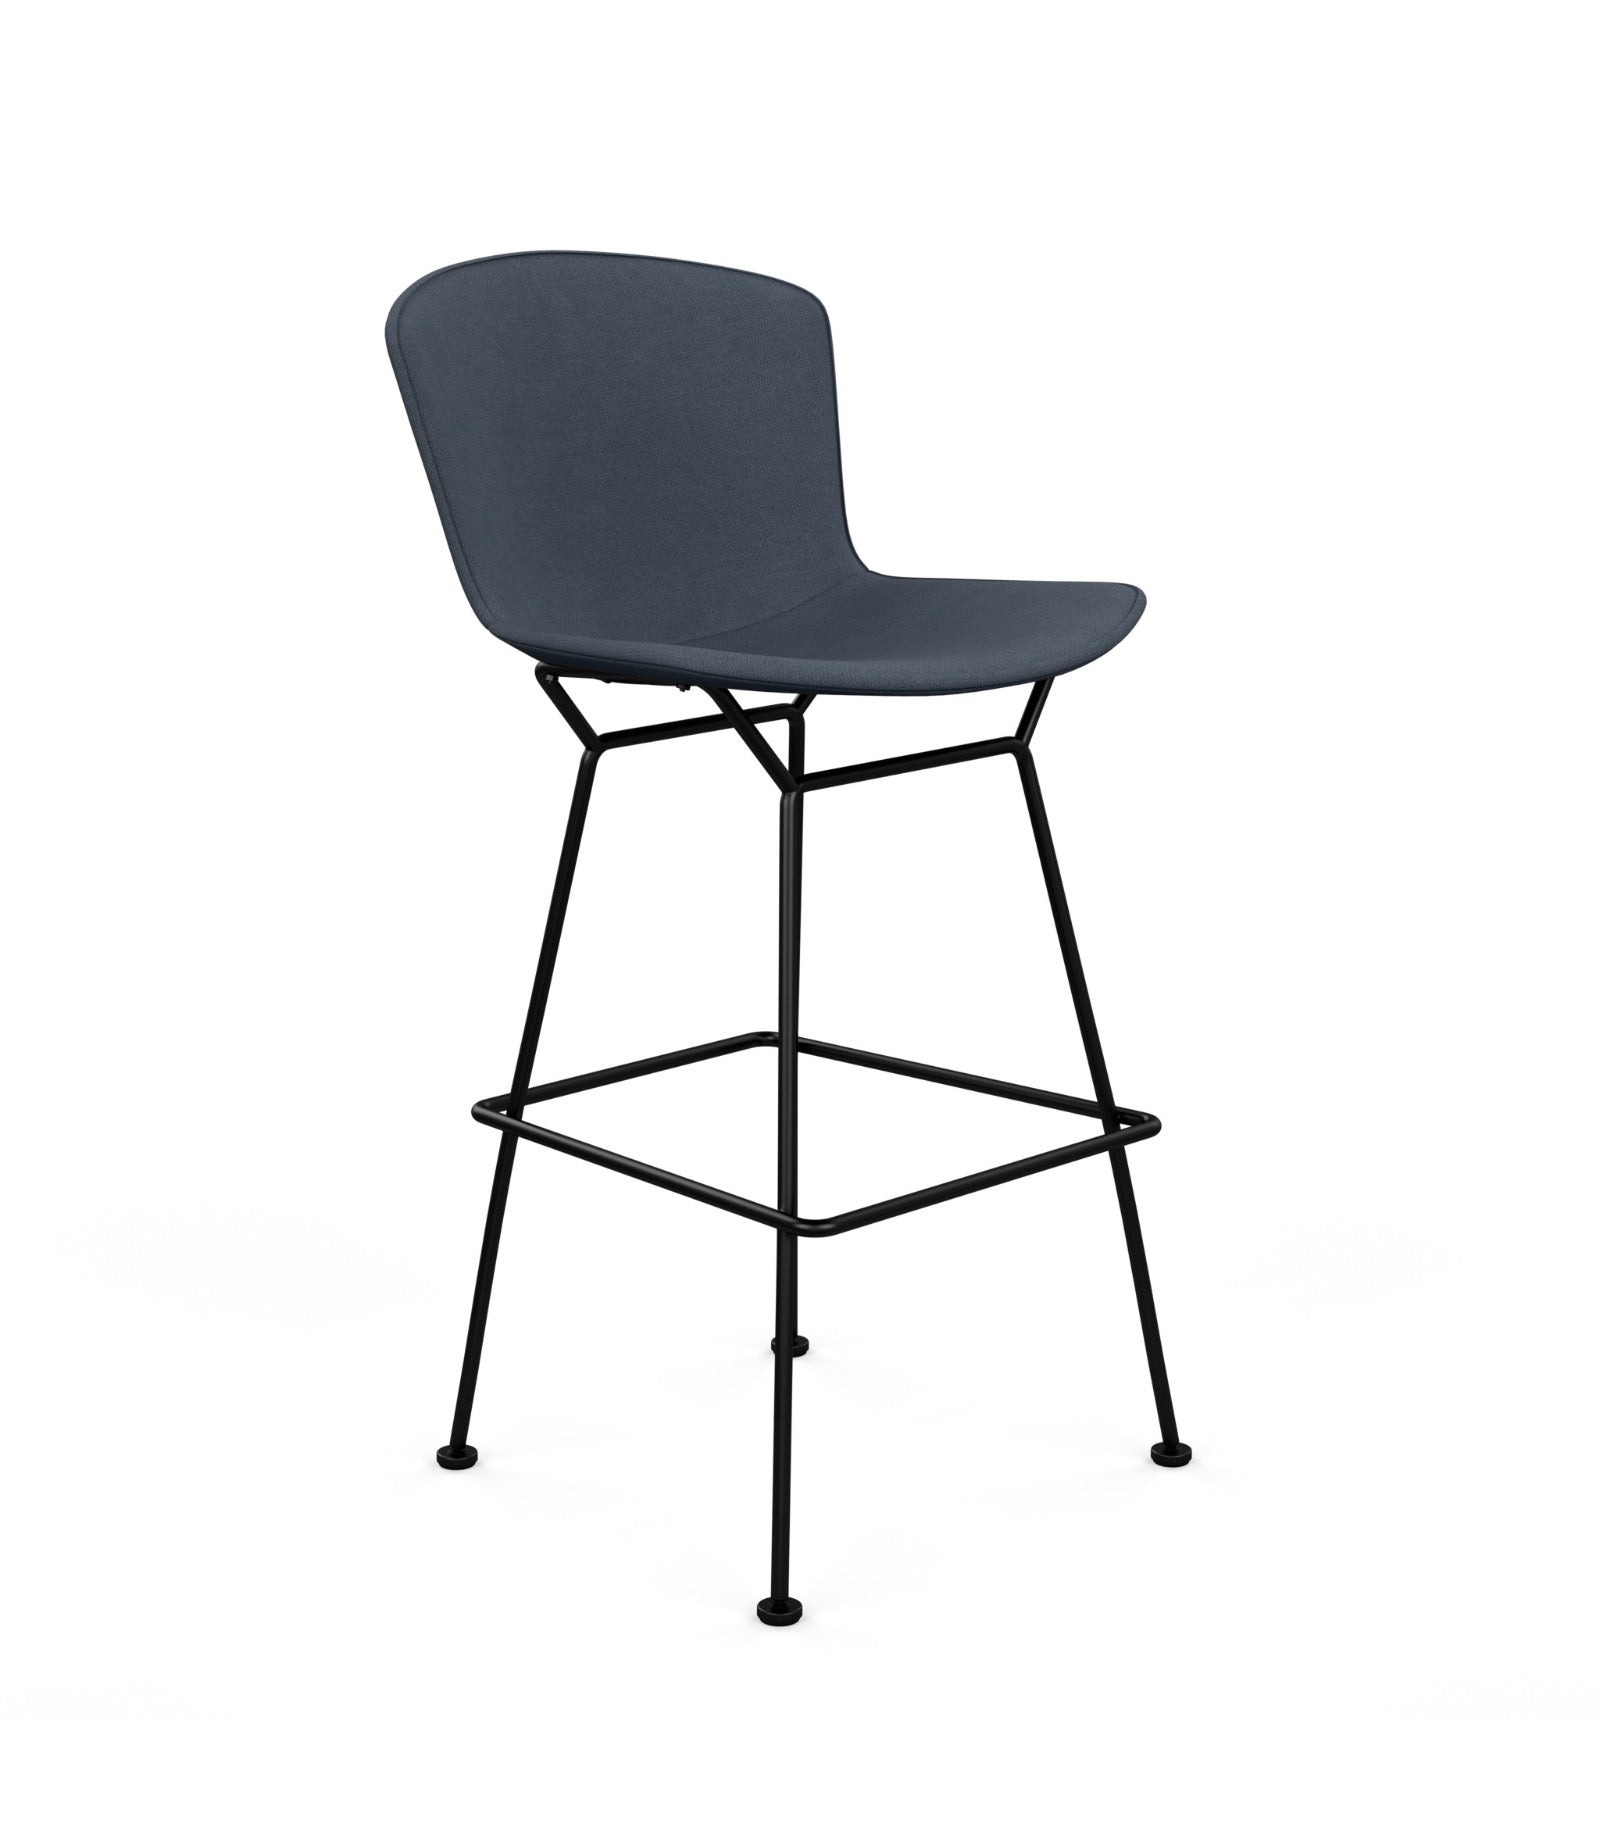 Bertoia Counter Height Bar Stool Fully Upholstered